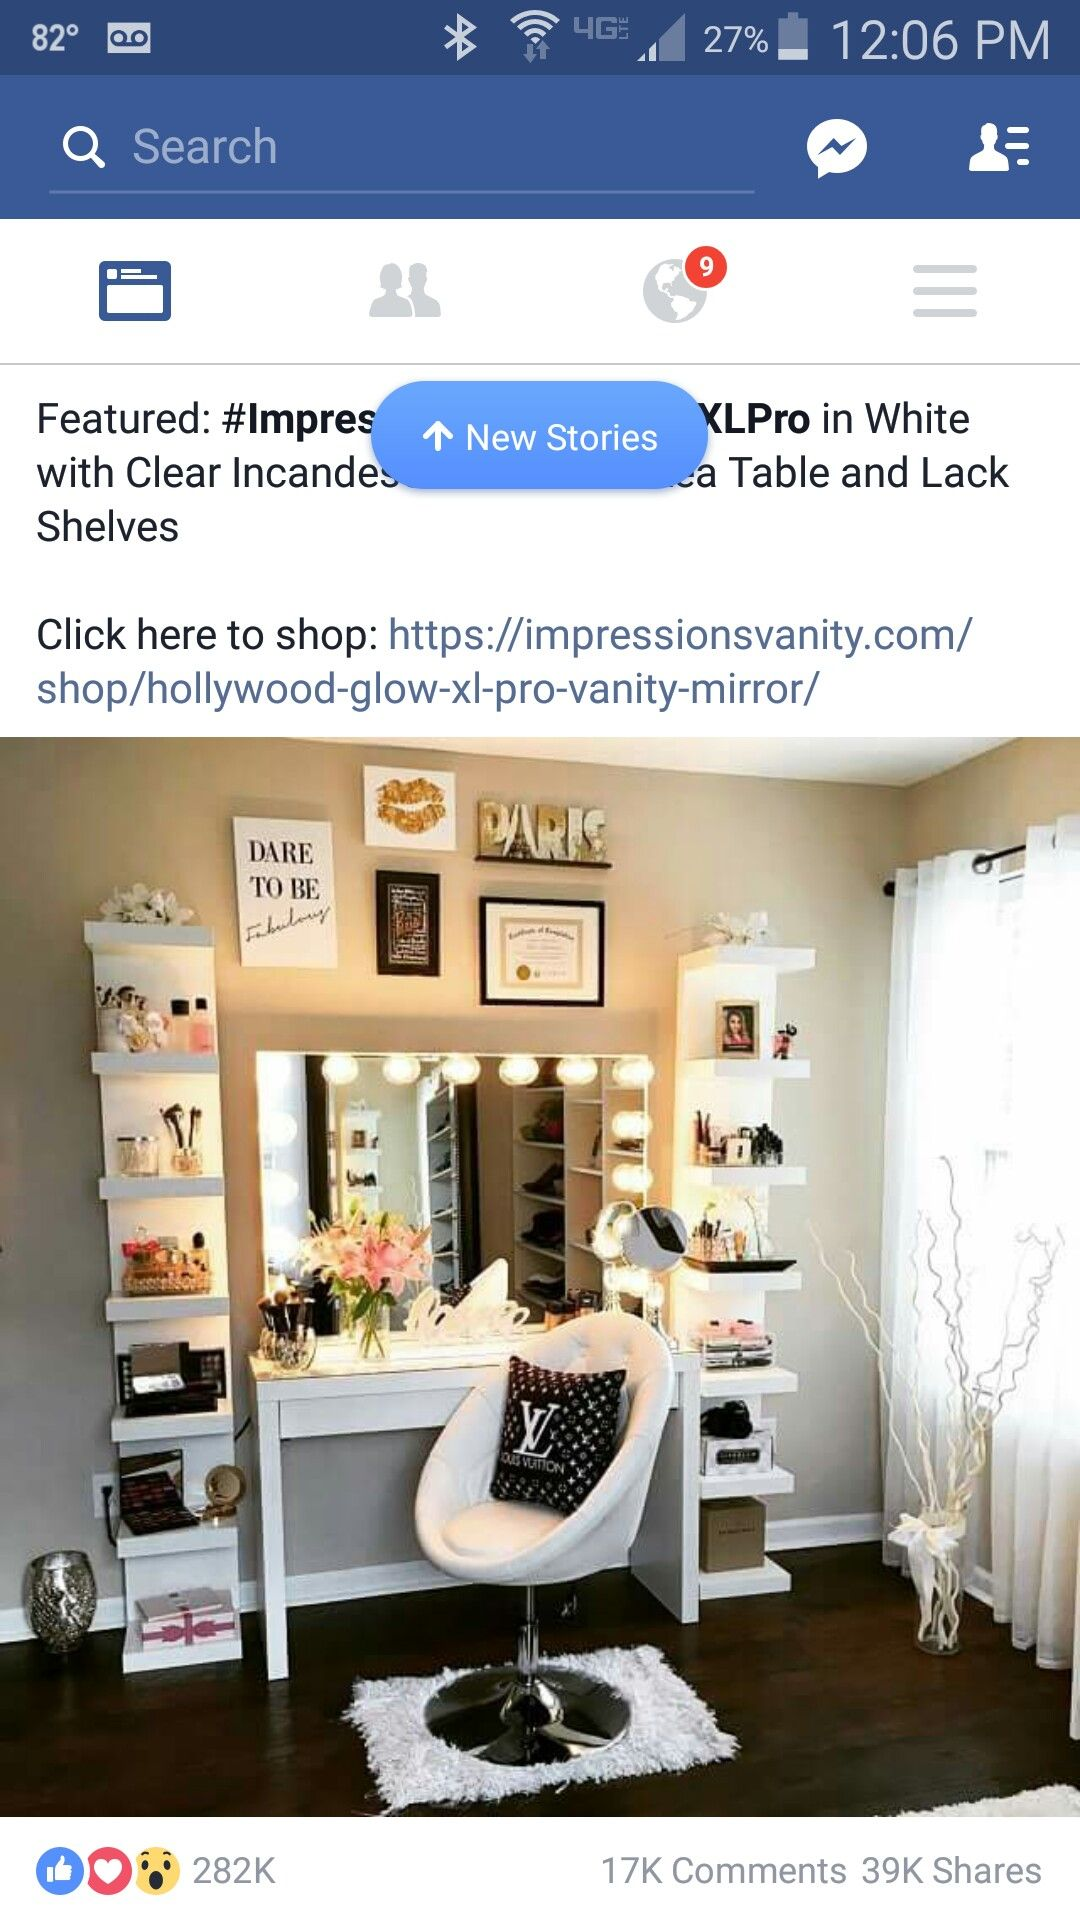 Glam Closet, Closet Rooms, Bedroom Closets, Bedrooms, Decor Ideas, Gift  Ideas, For The Home, Vanity Mirrors, Vanity Tables